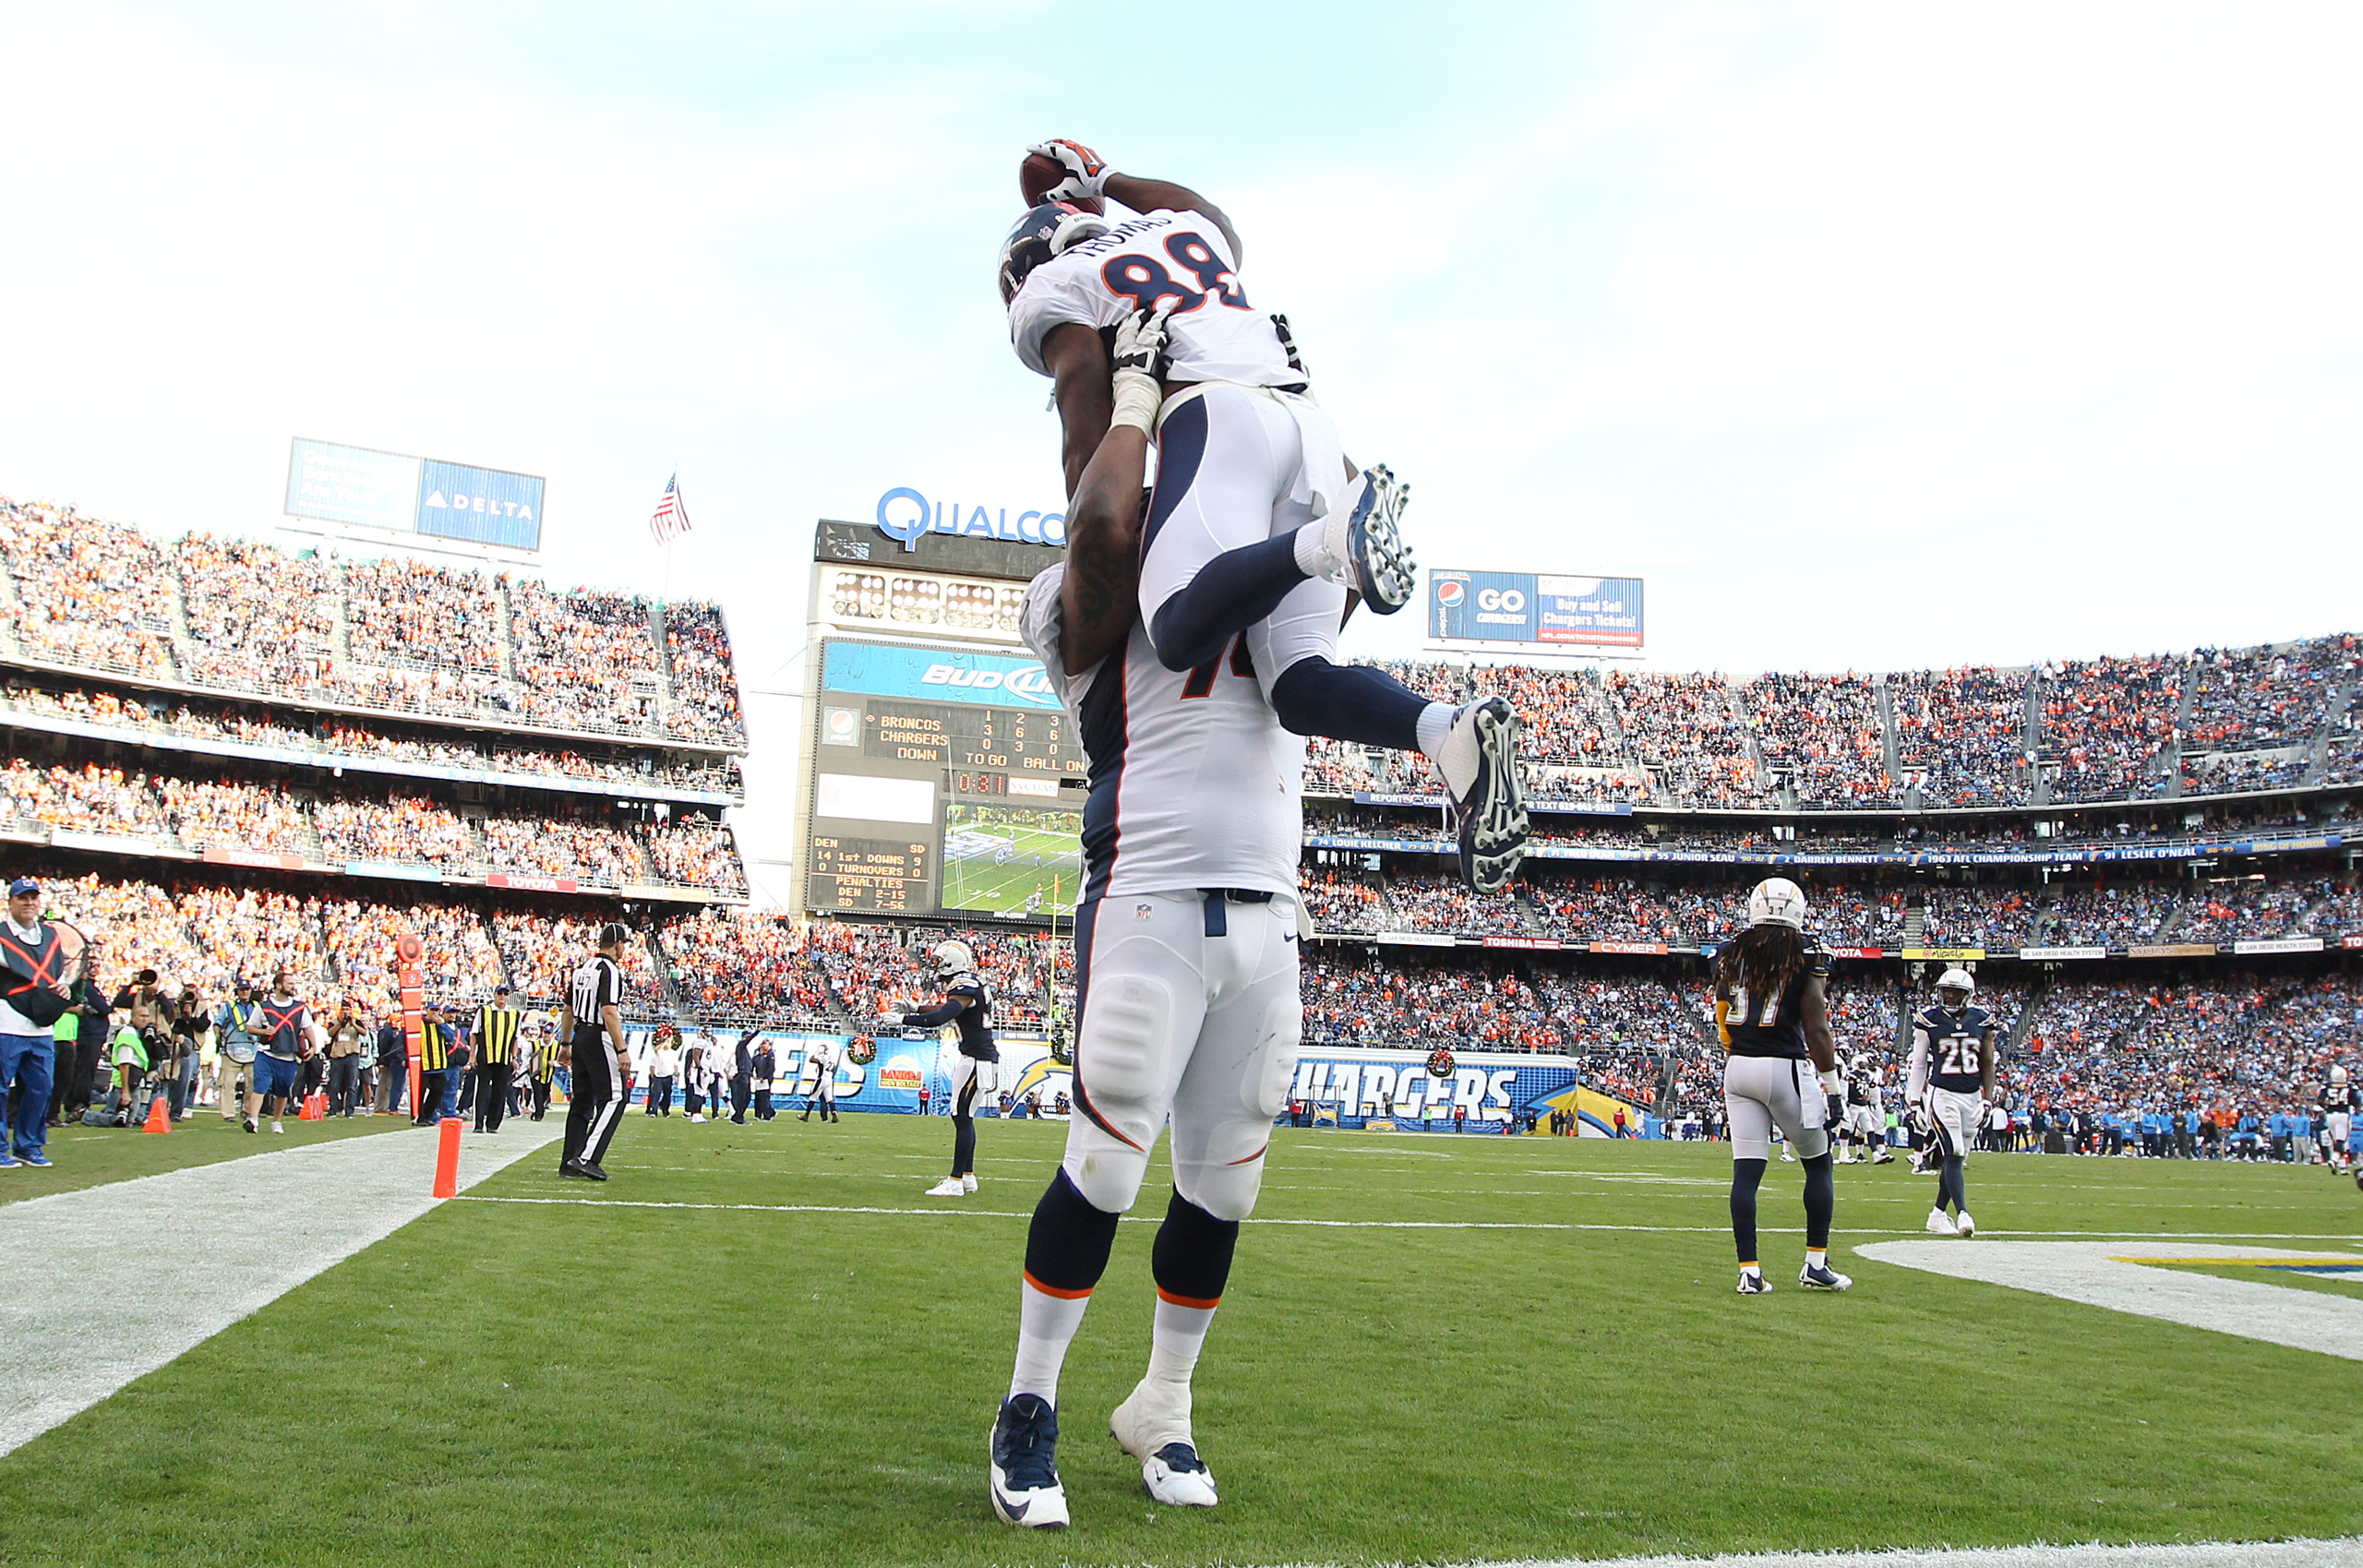 Orlando Franklin lifts wide receiver Demaryius Thomas in the air after scoring a 28-yard touchdown during third quarter action against the San Diego Chargers during the game at Qualcomm Stadium in San Diego, CA, December 14, 2014. (Gabriel Christus)